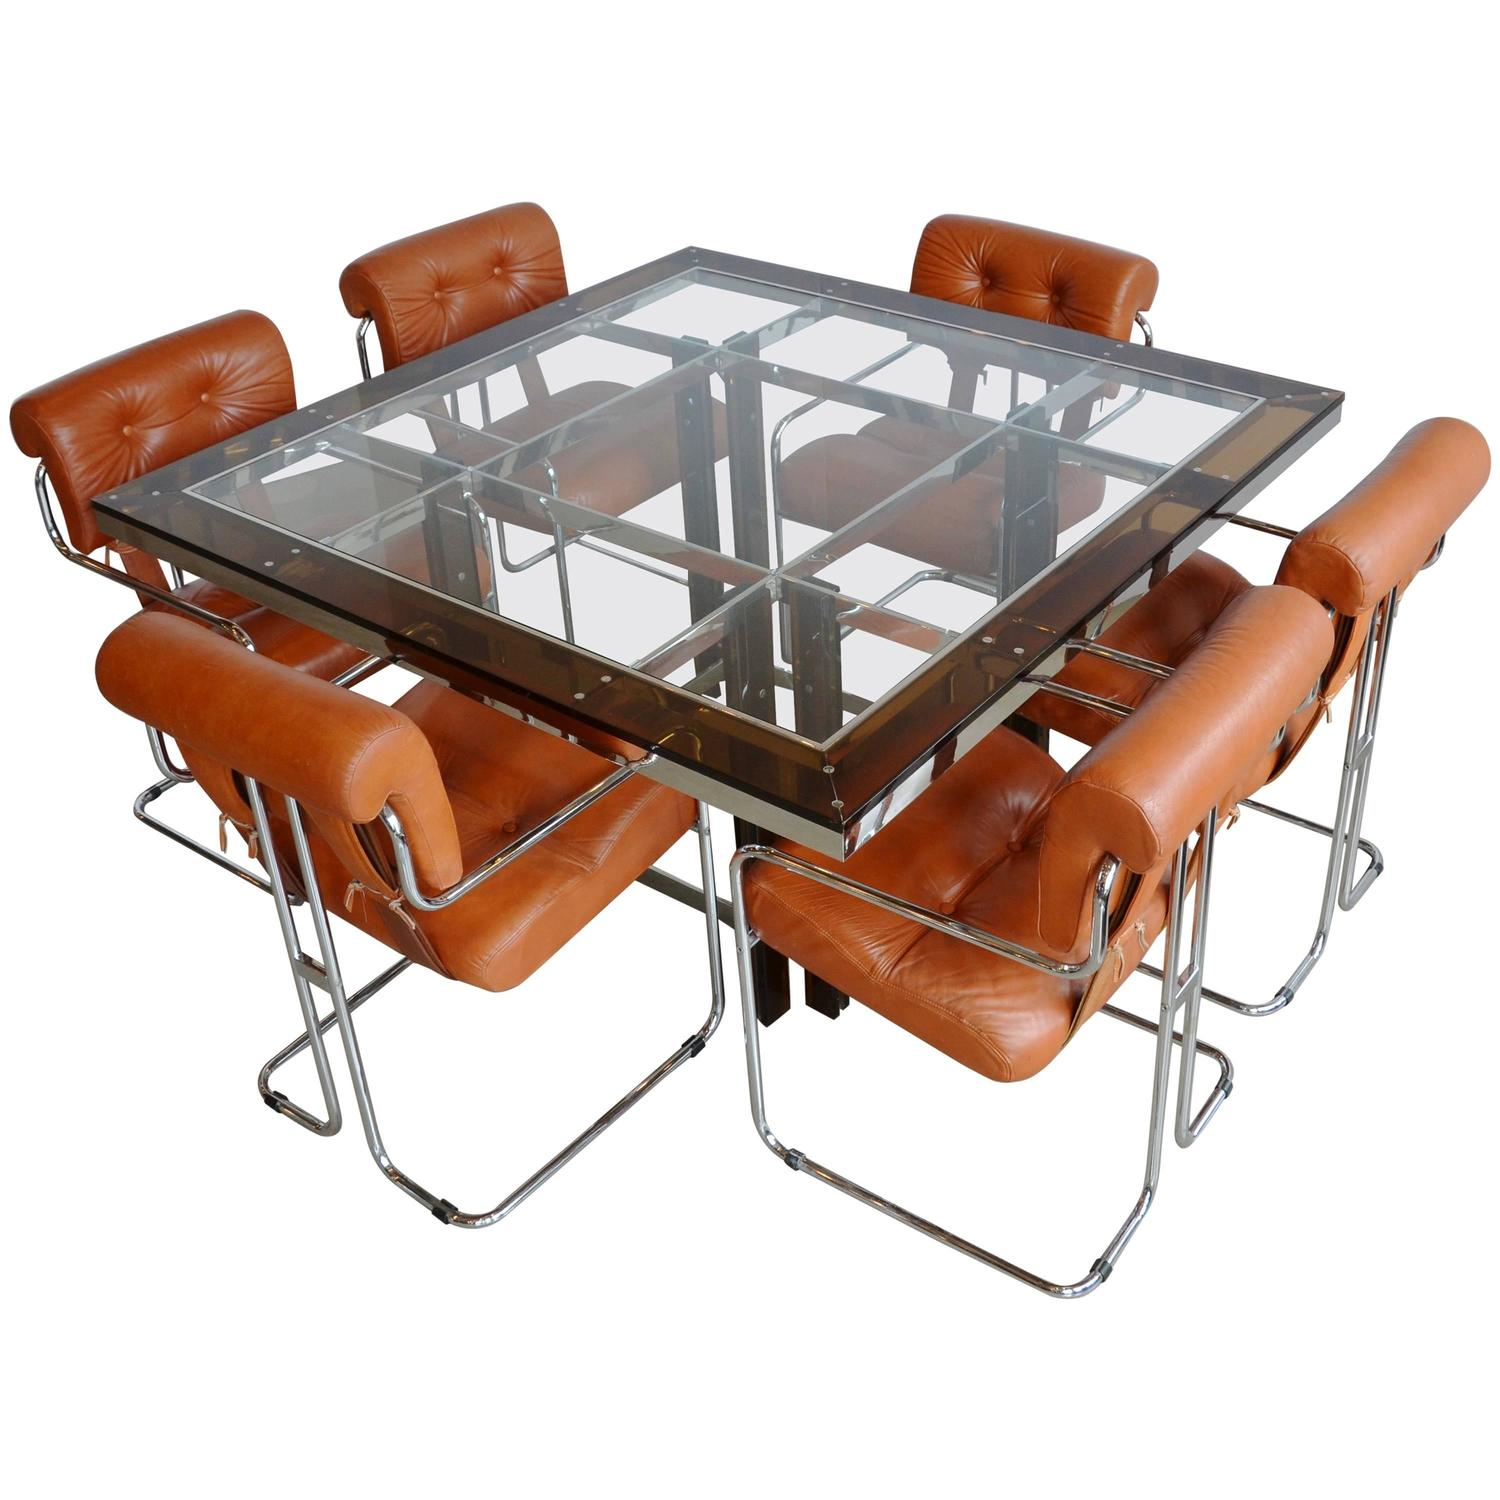 italian dining room sets 96 for sale at 1stdibs leather tucroma chairs for pace and amber acrylic and glass dining table 1970